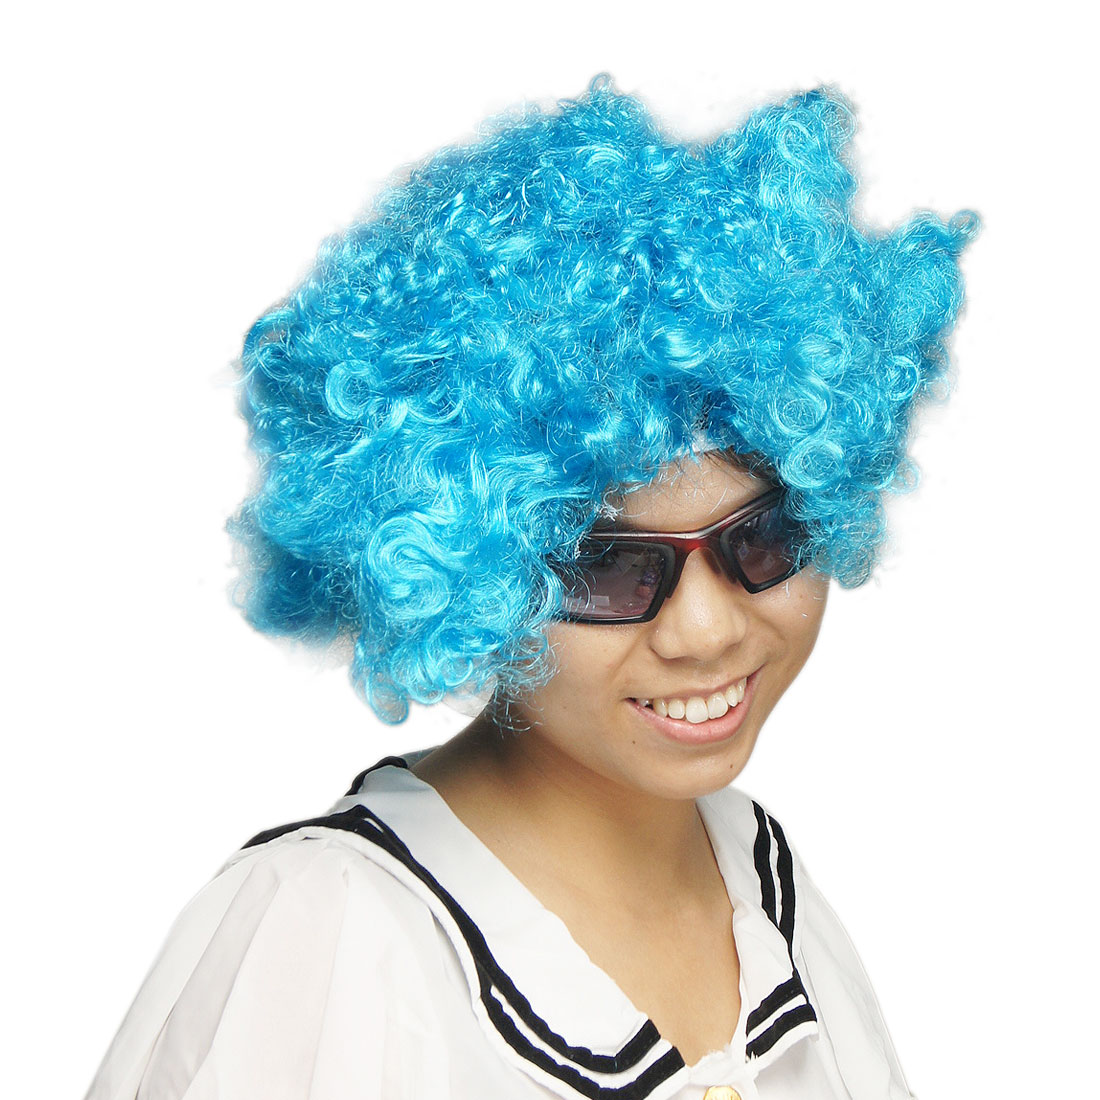 Curly Style Blue Synthetic Fiber Fake Hair Short Clown Wig